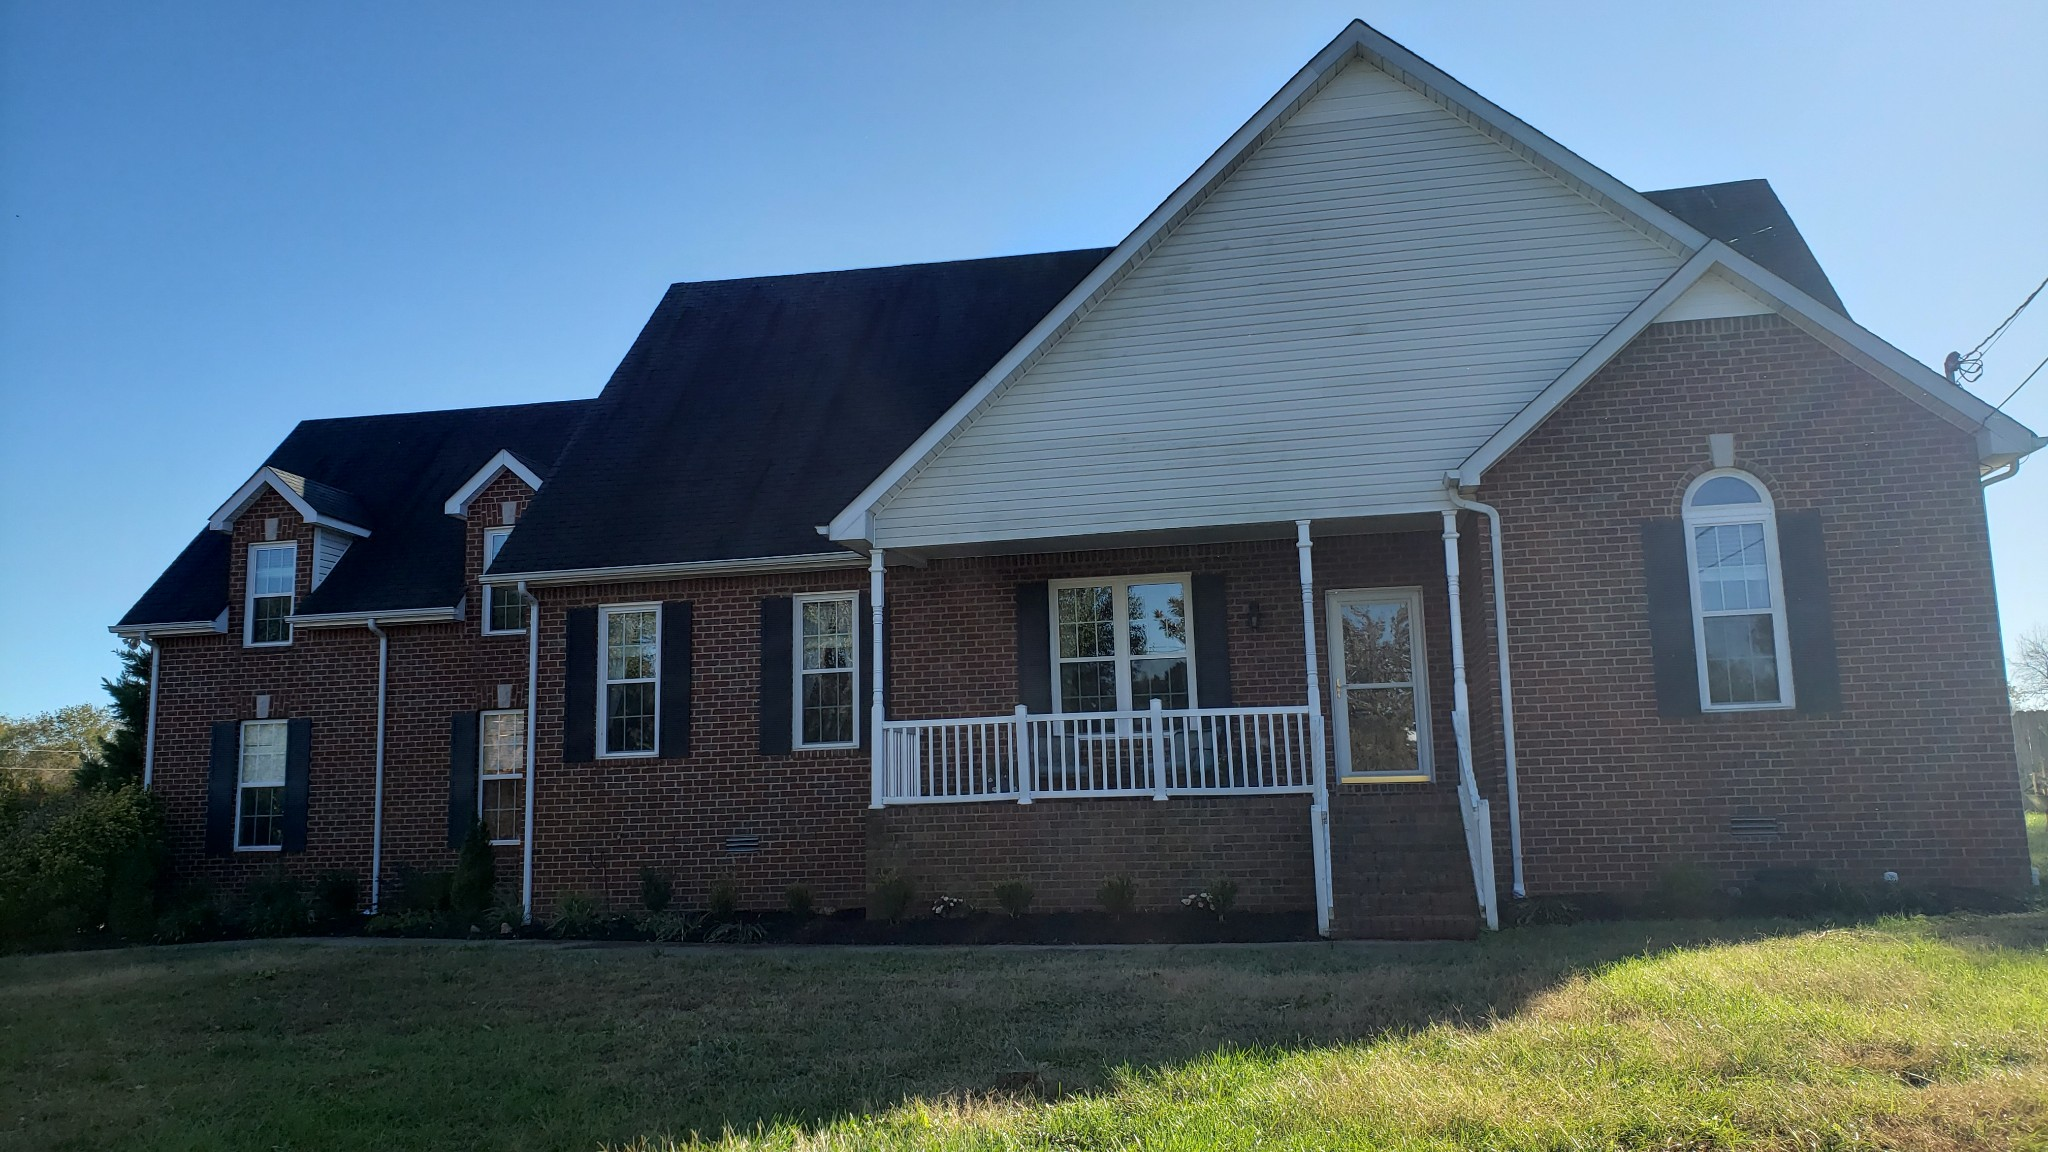 109 Barra Ln, Lascassas, TN 37085 - Lascassas, TN real estate listing